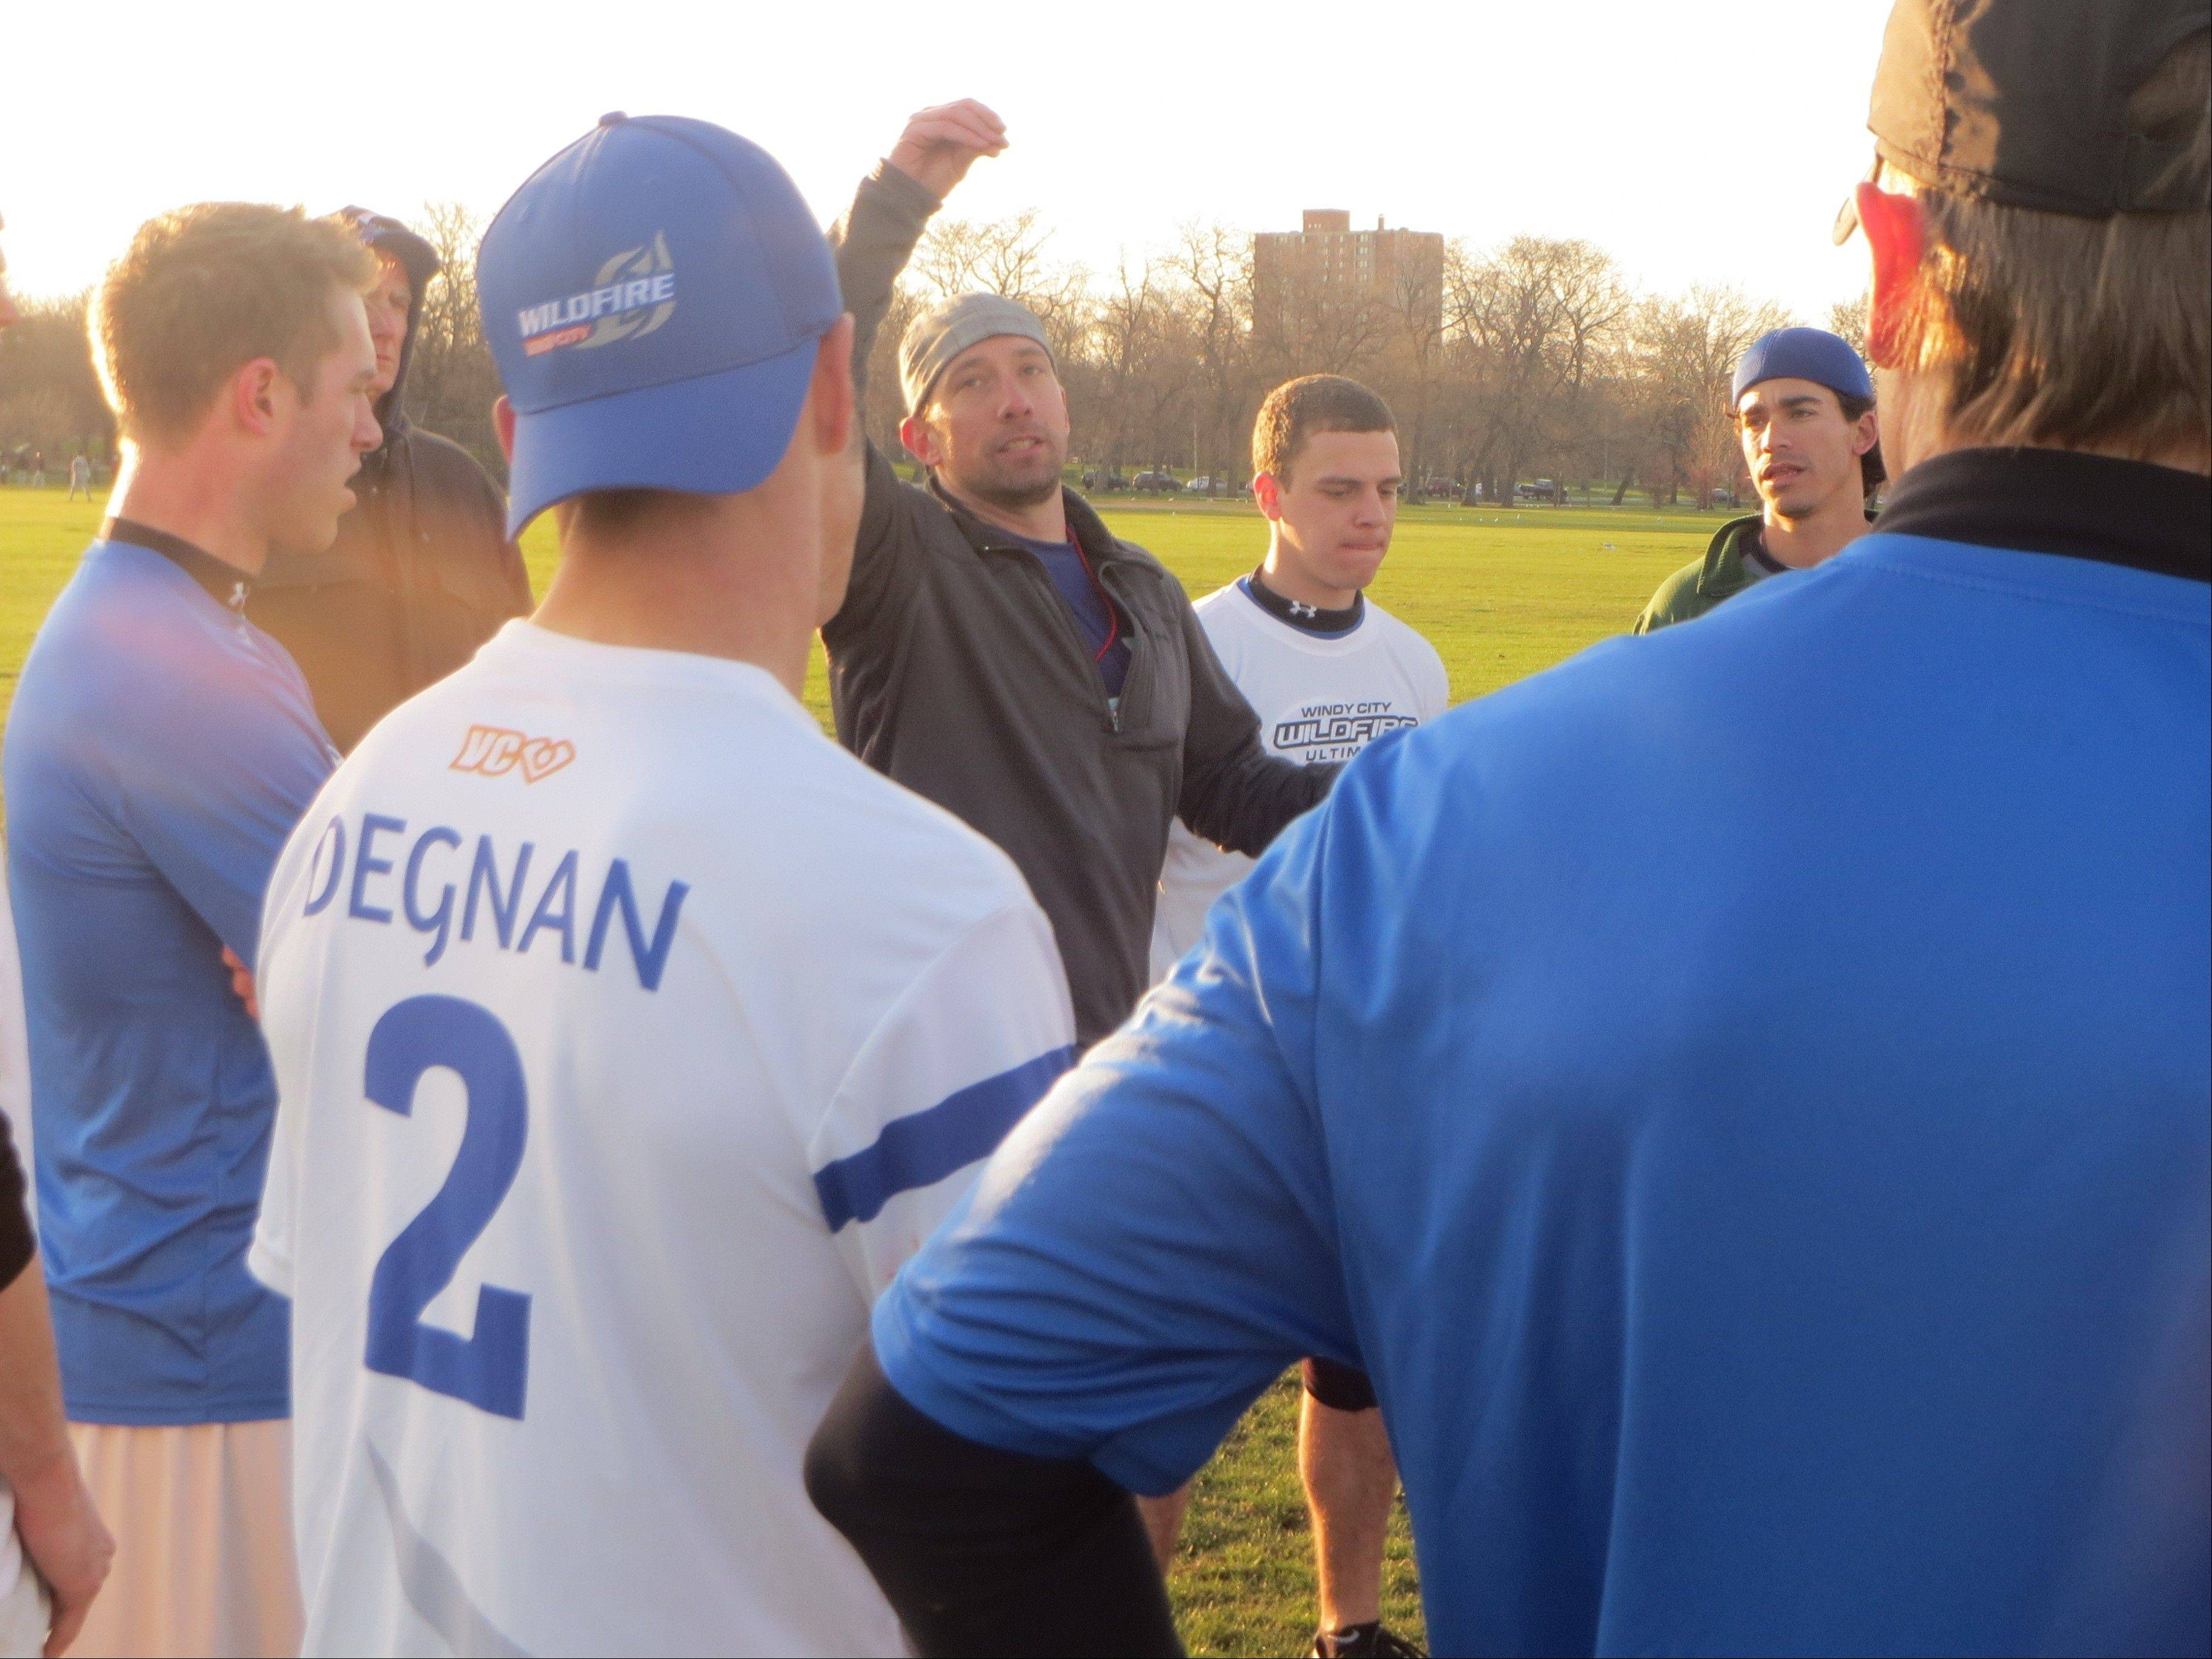 Demonstrating a technique used in the game of Ultimate, legendary player and Warrenville native Ron Kubalanza (with arm raised) dishes out advice to his fellow teammates on the Windy City Wildfire, Chicago's new sports franchise in the American Ultimate Disc League.